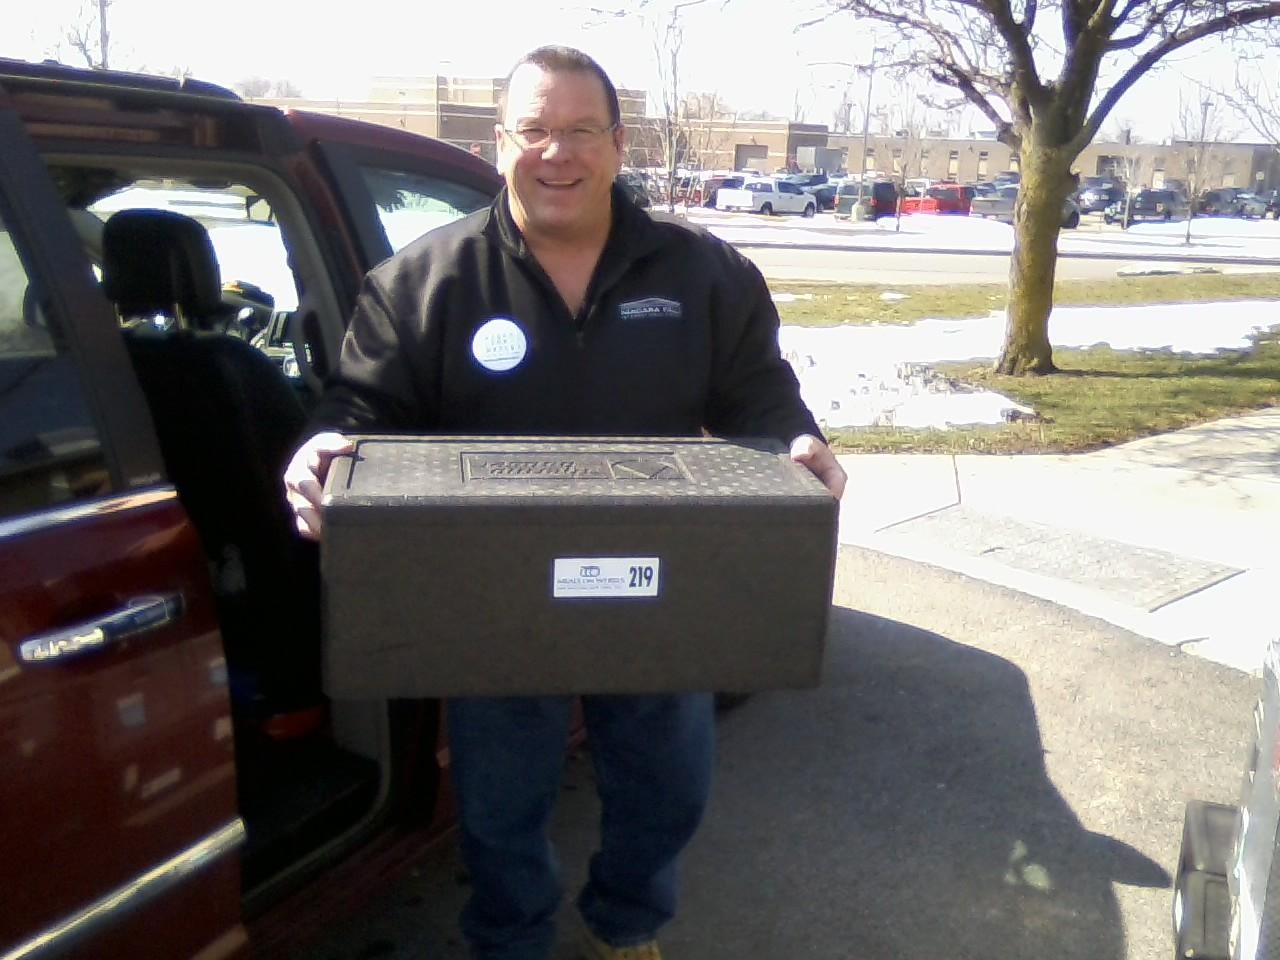 Cheektowaga Deputy Supervisor Tim Meyers delivers shut-ins food from the Meals on Wheels program.  (Provided photo)